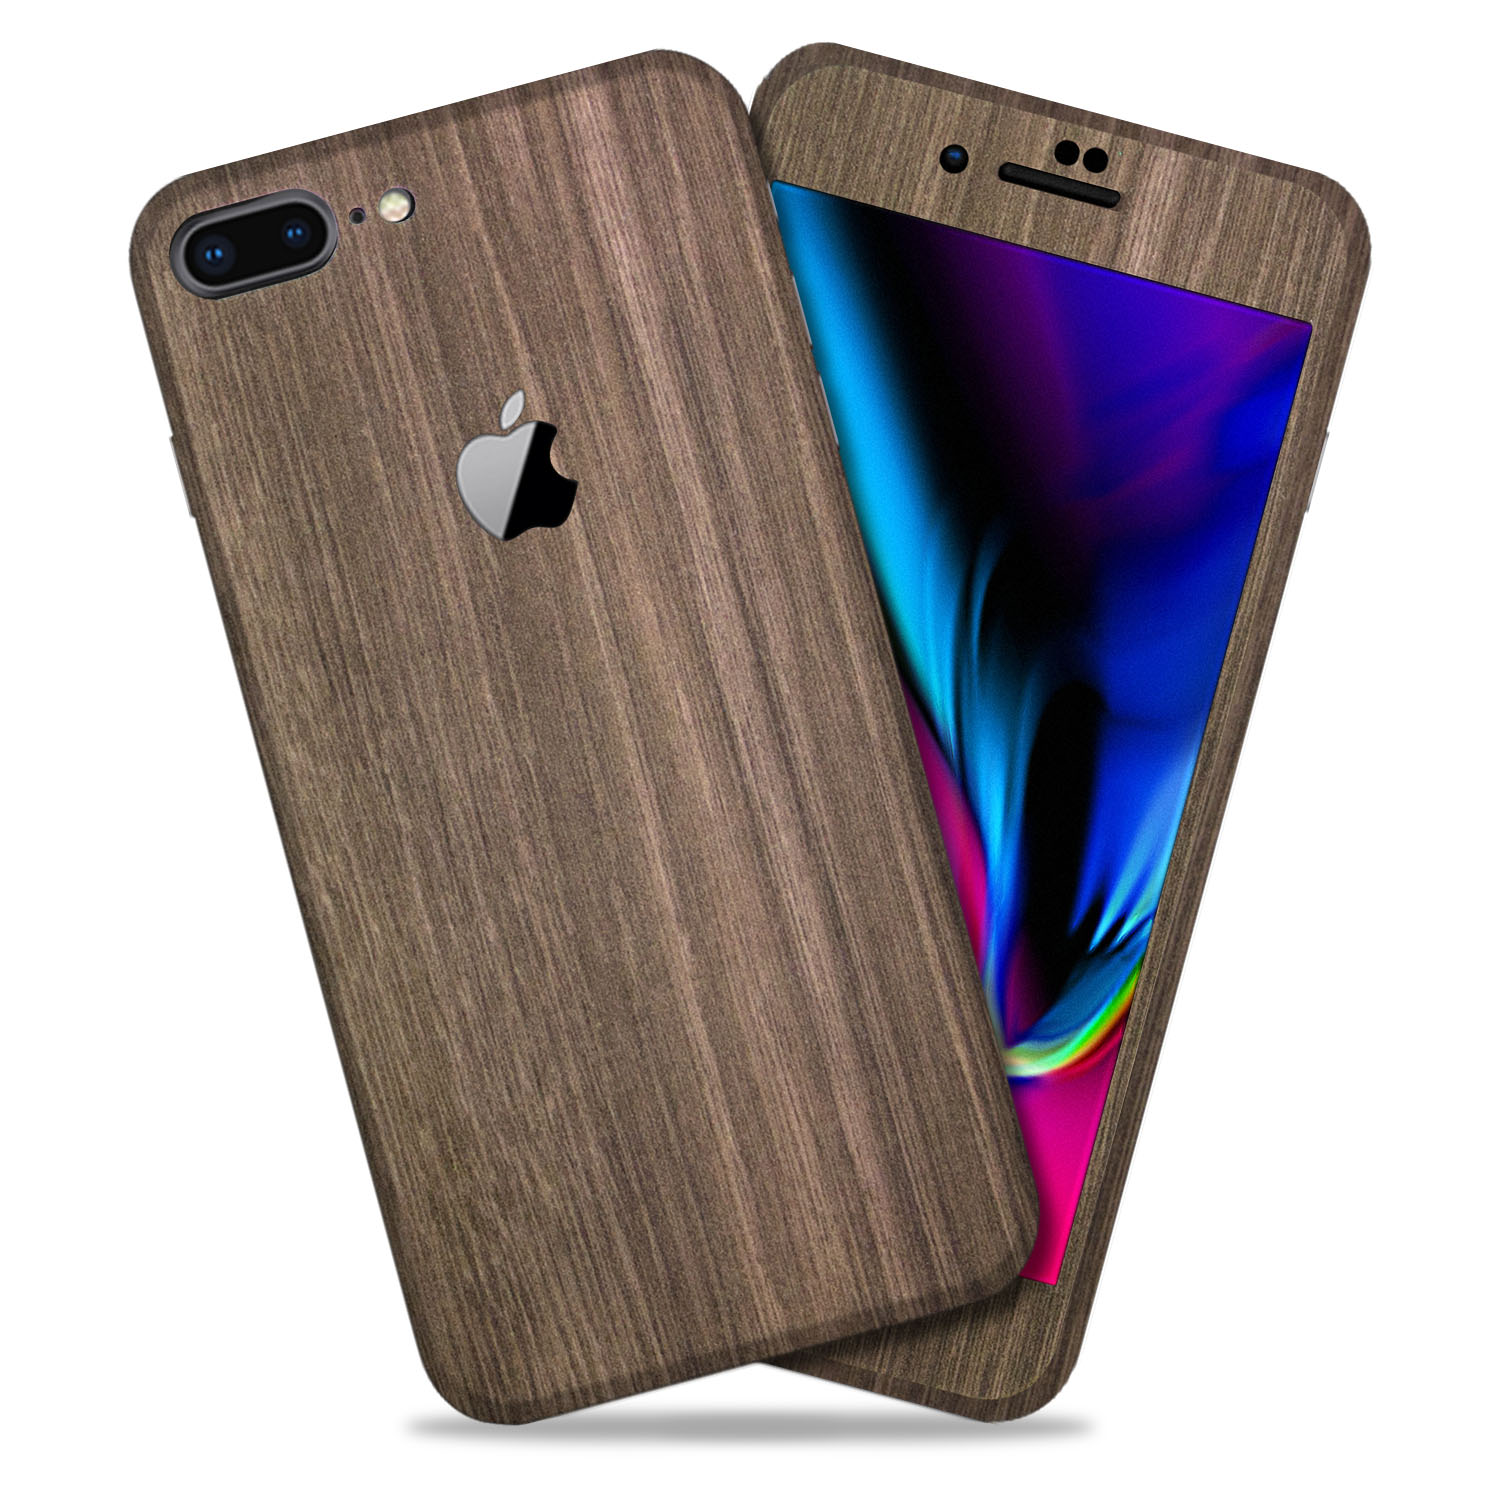 Brown Wood Texture Protective Skin Decal for Apple iPhone 8 Plus Vinyl Wrap Cover 2 Pack [Back 1-PK & 1-PK] by GolemGuard